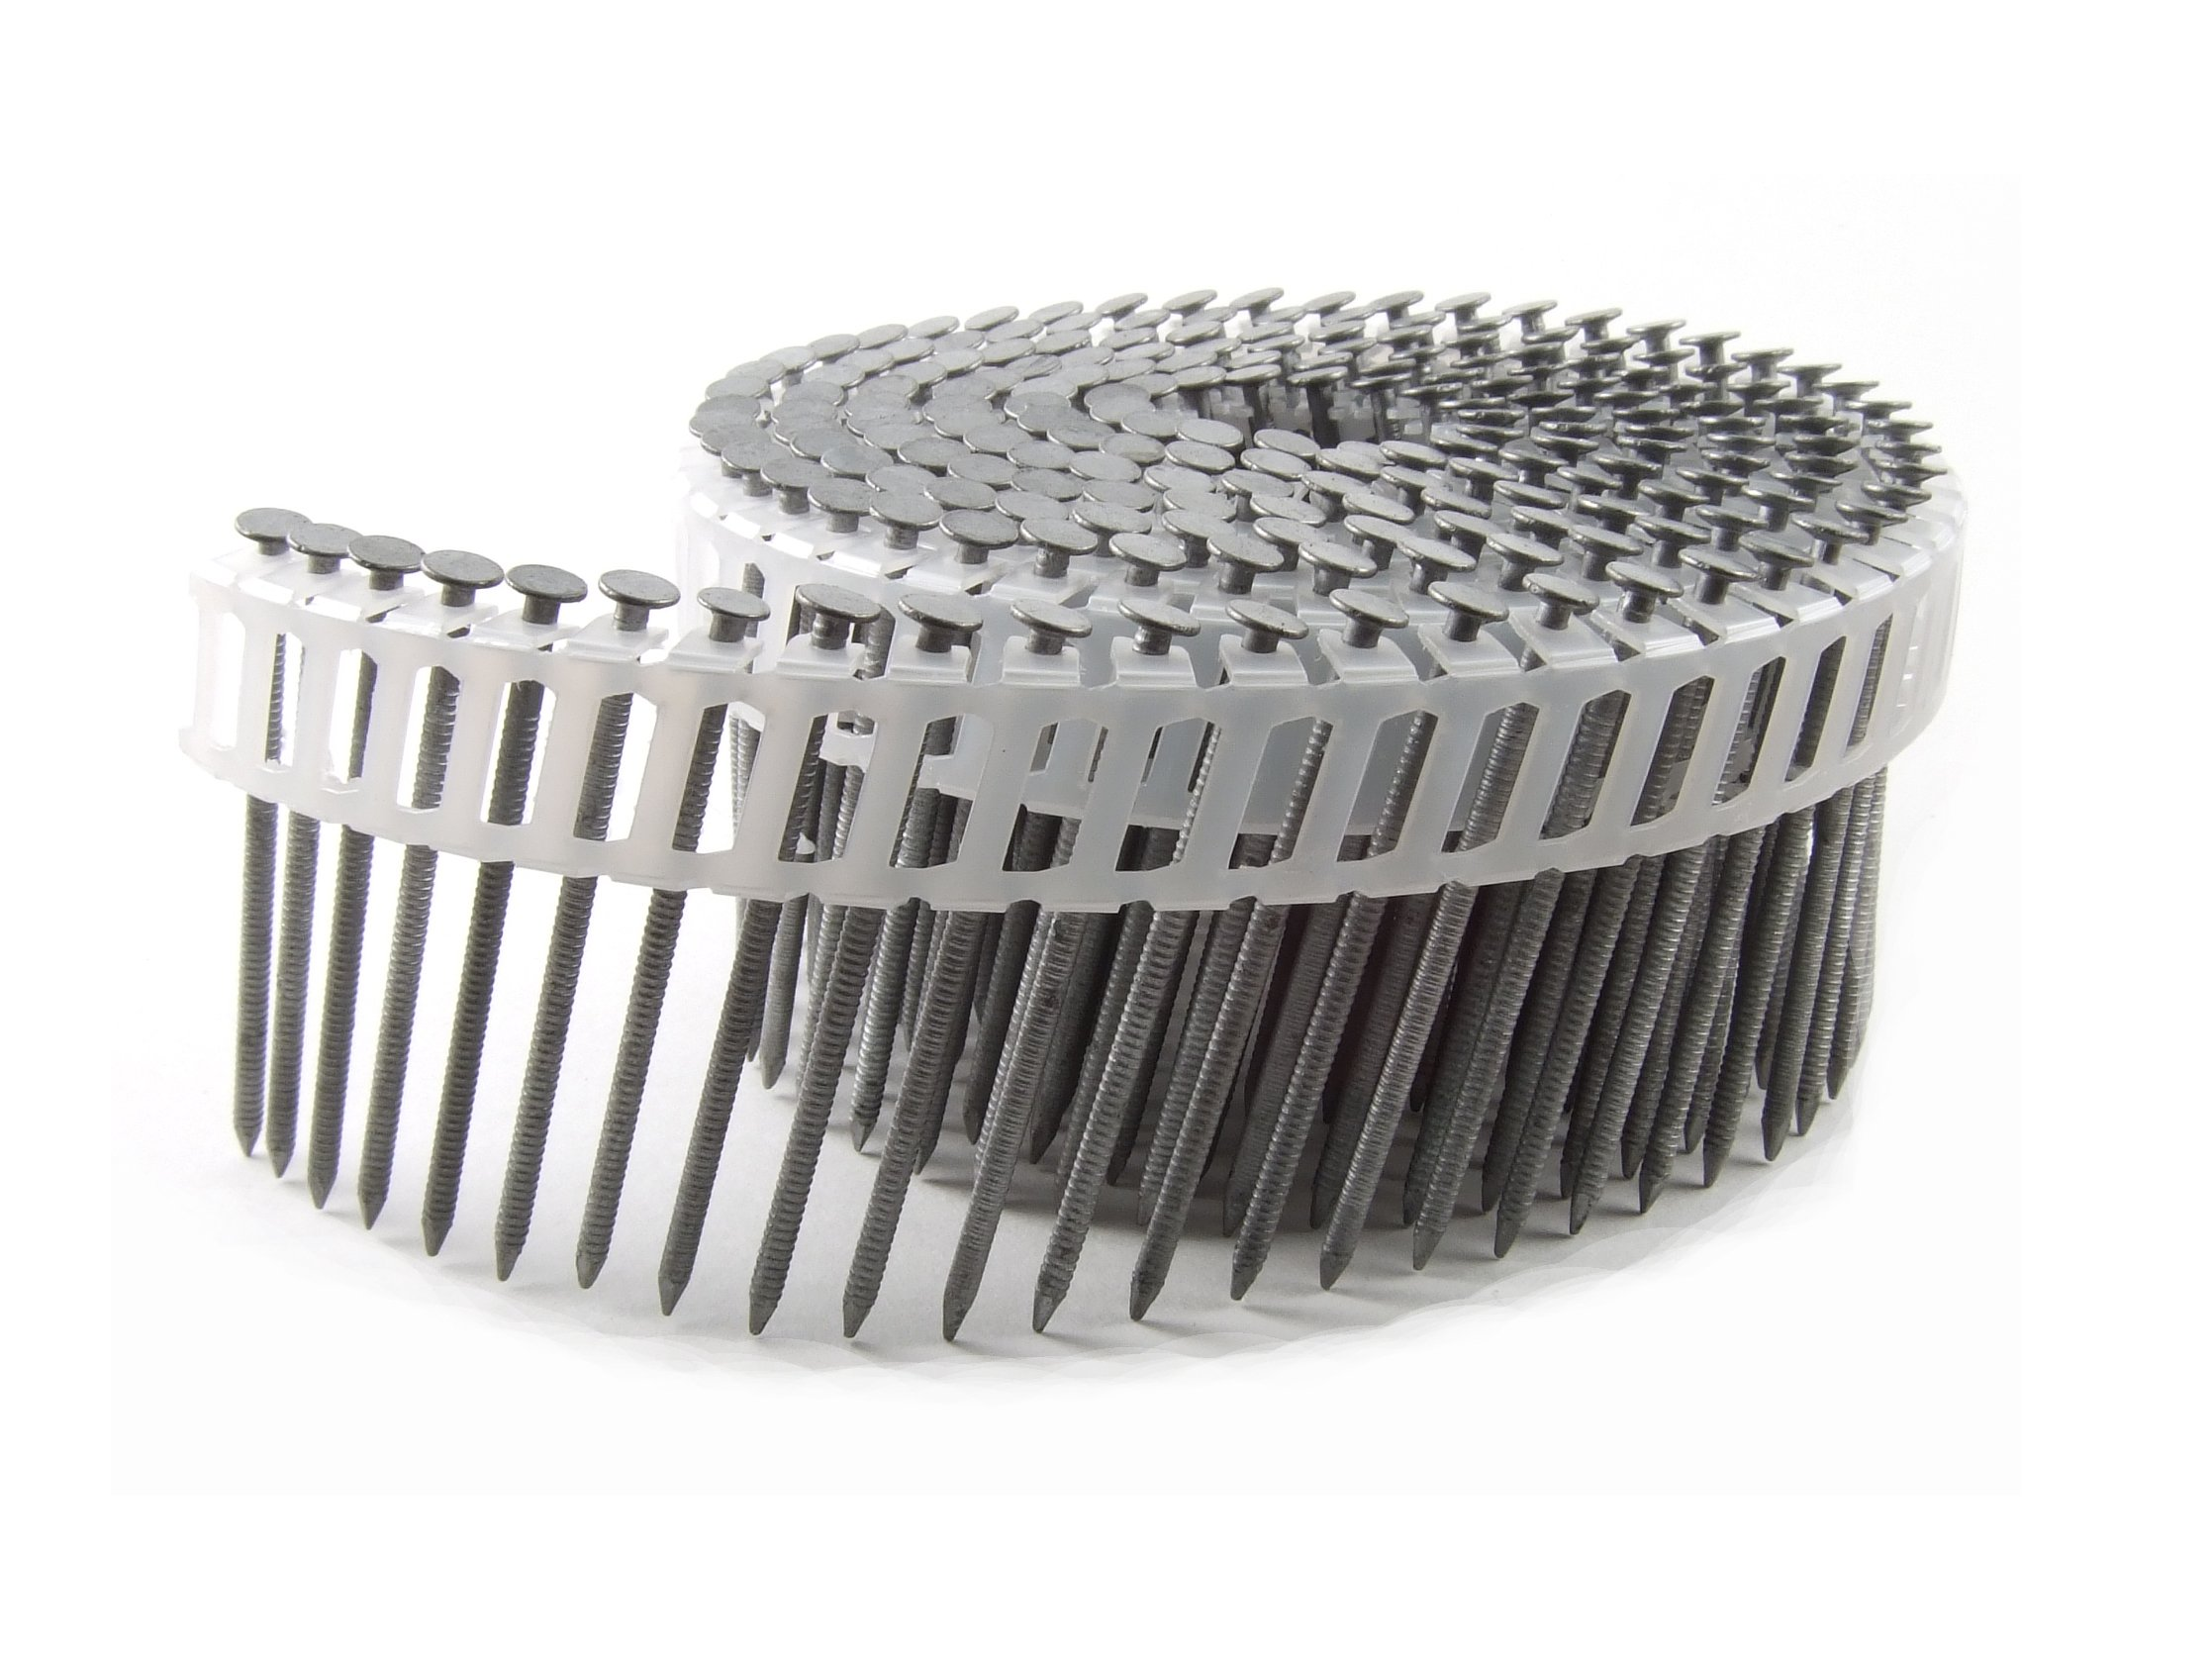 B&C Eagle 112X092HDRPC Round Head 1-1/2-Inch x .092 x 15 Degree Hot Dip Galvanized Ring Shank Plastic Collated Coil Nails (6,000 per box)